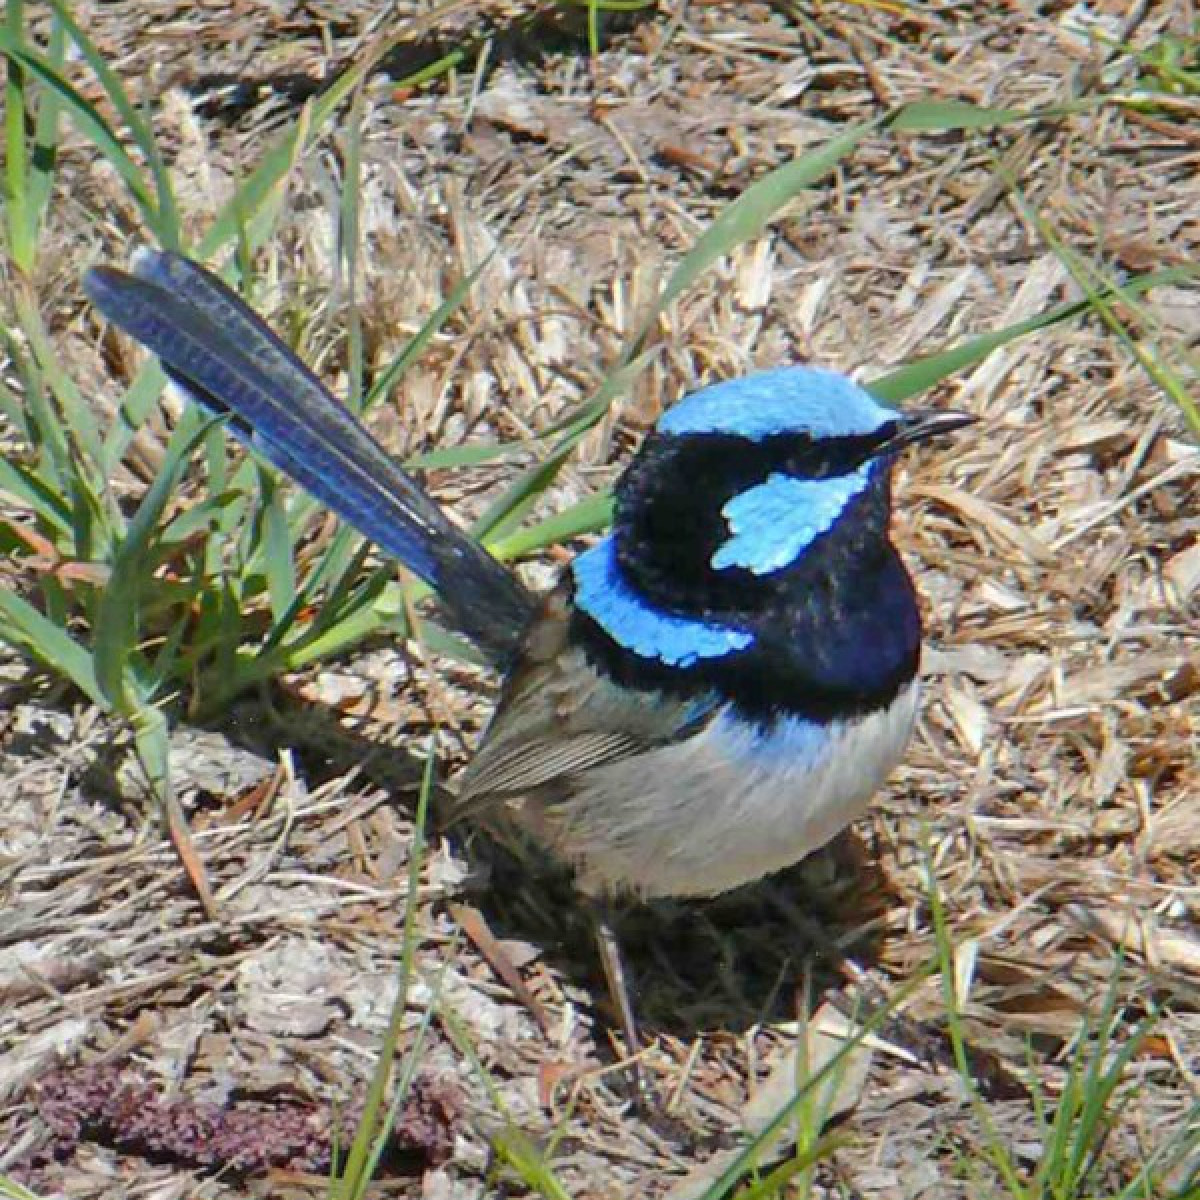 661 Superb Fairy-wren